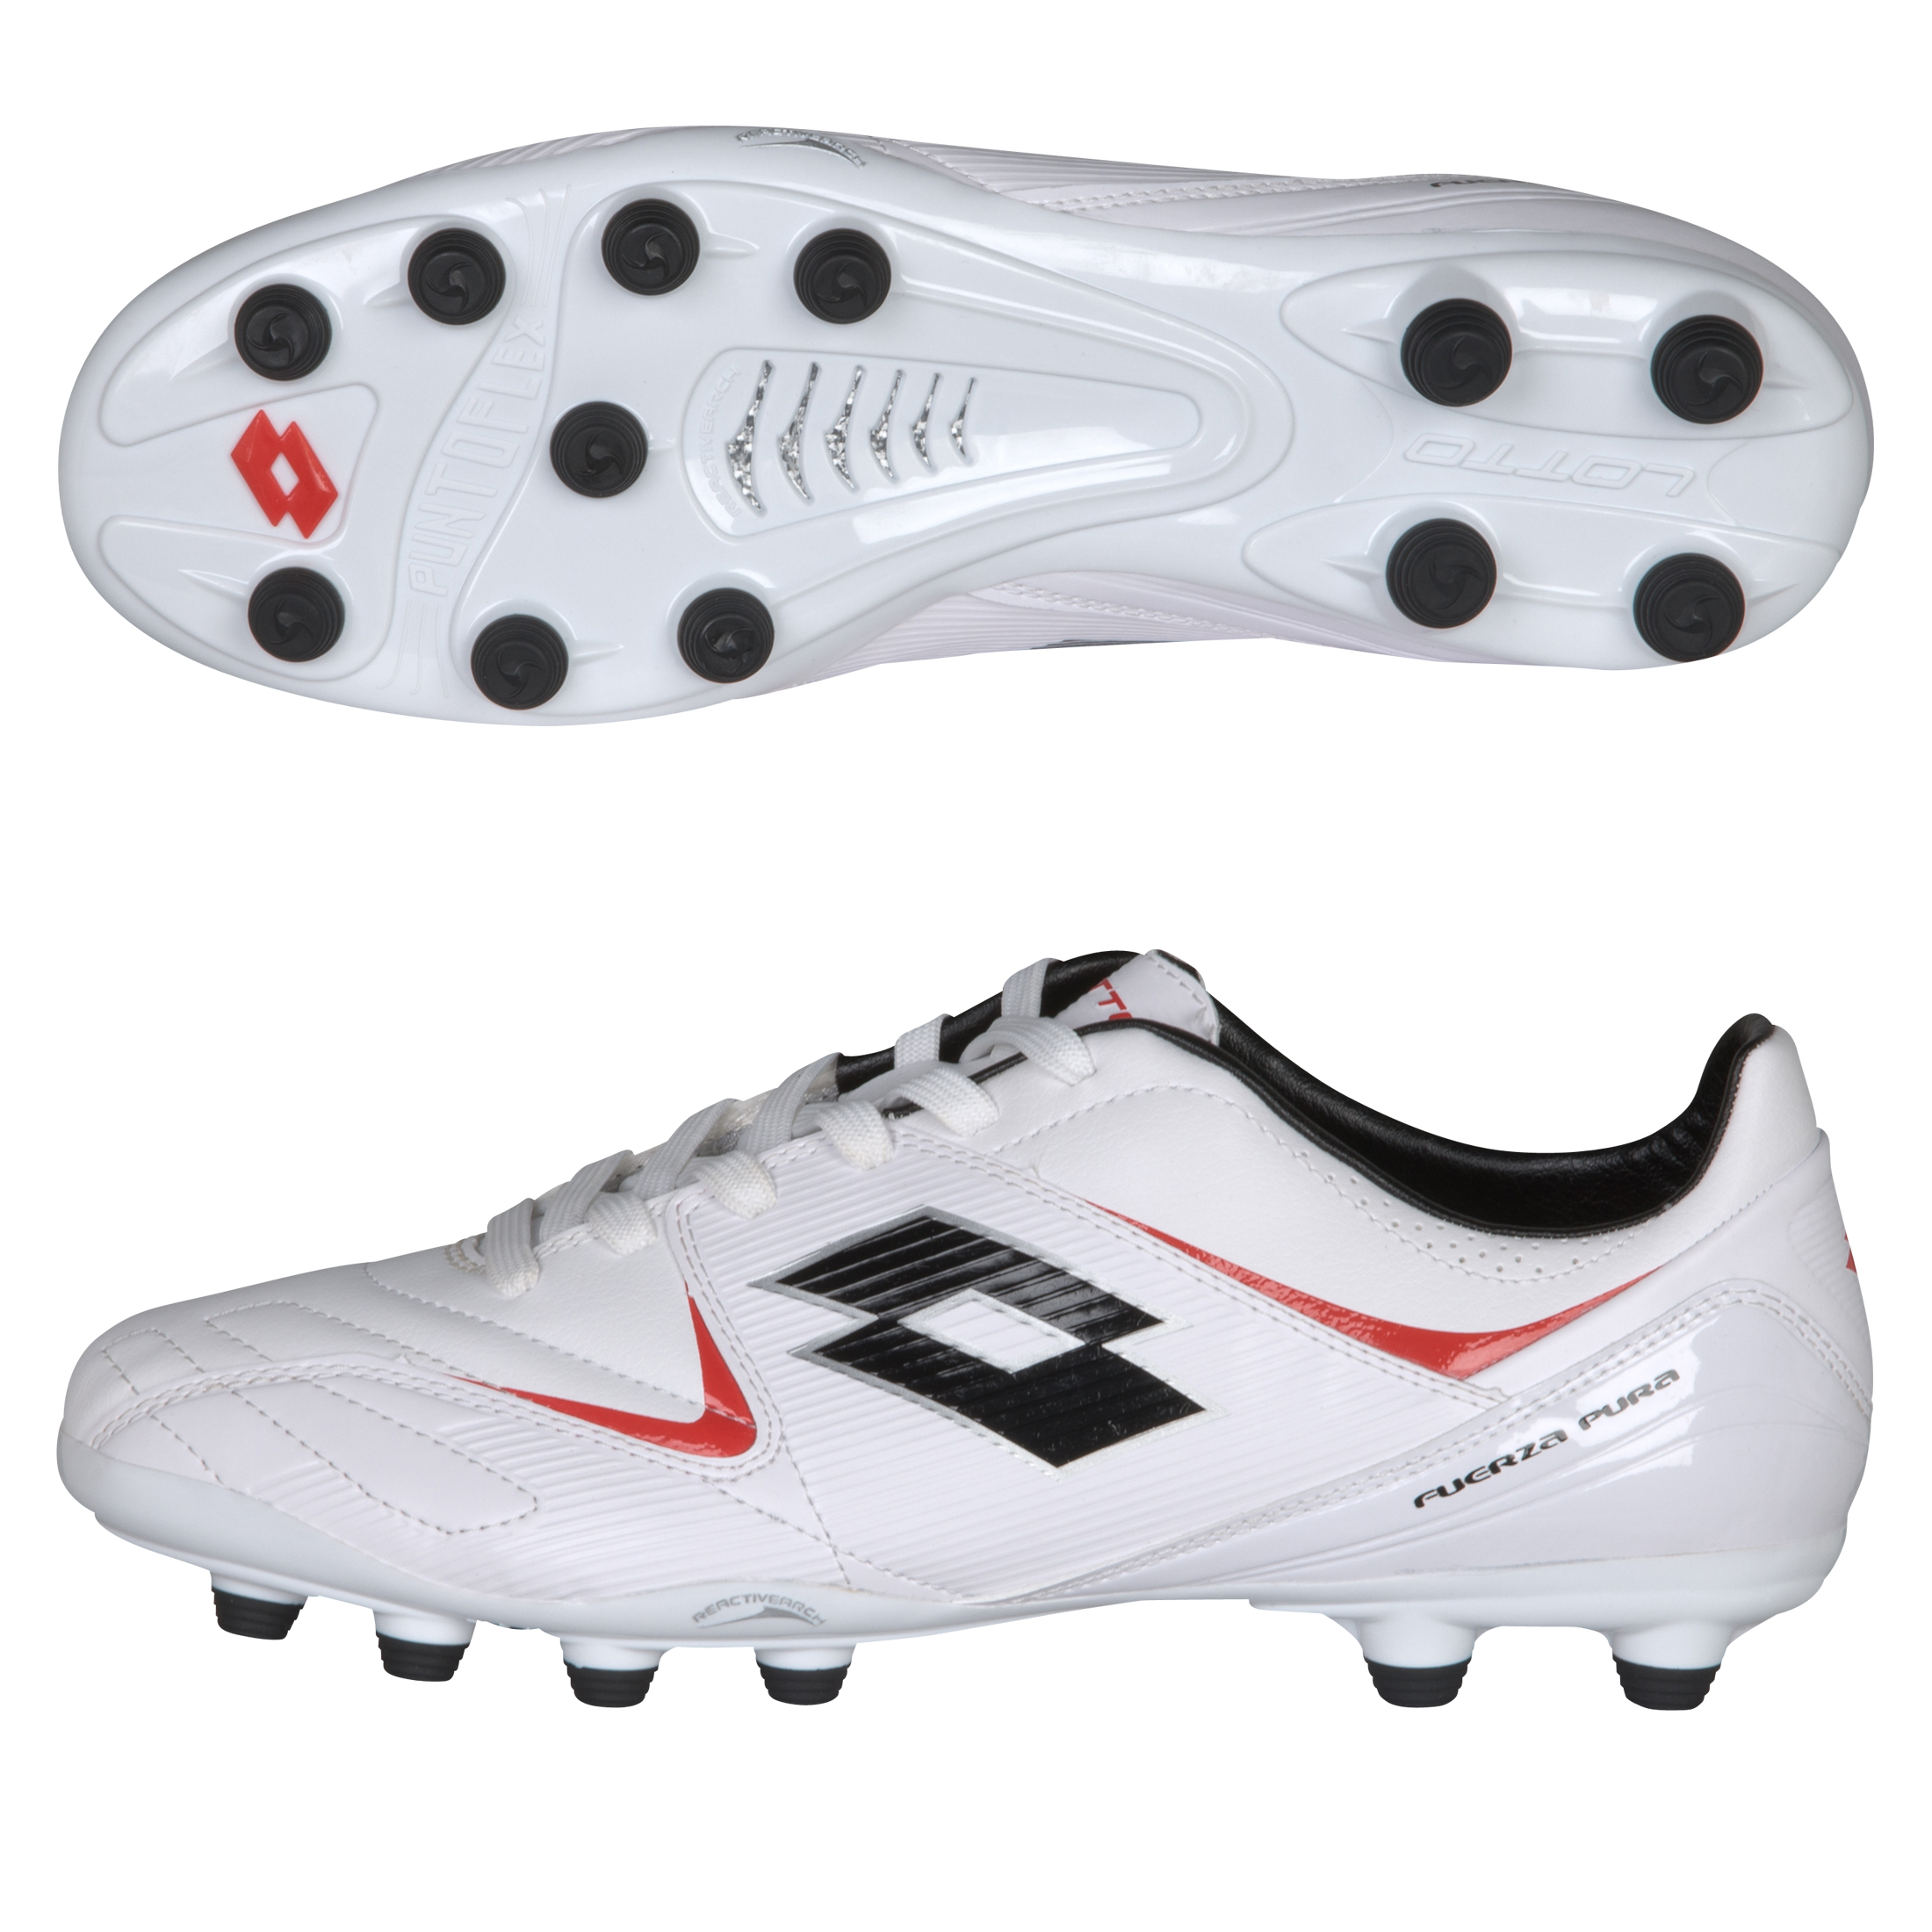 Lotto Fuerzapura II 500 FG White/Risk Red